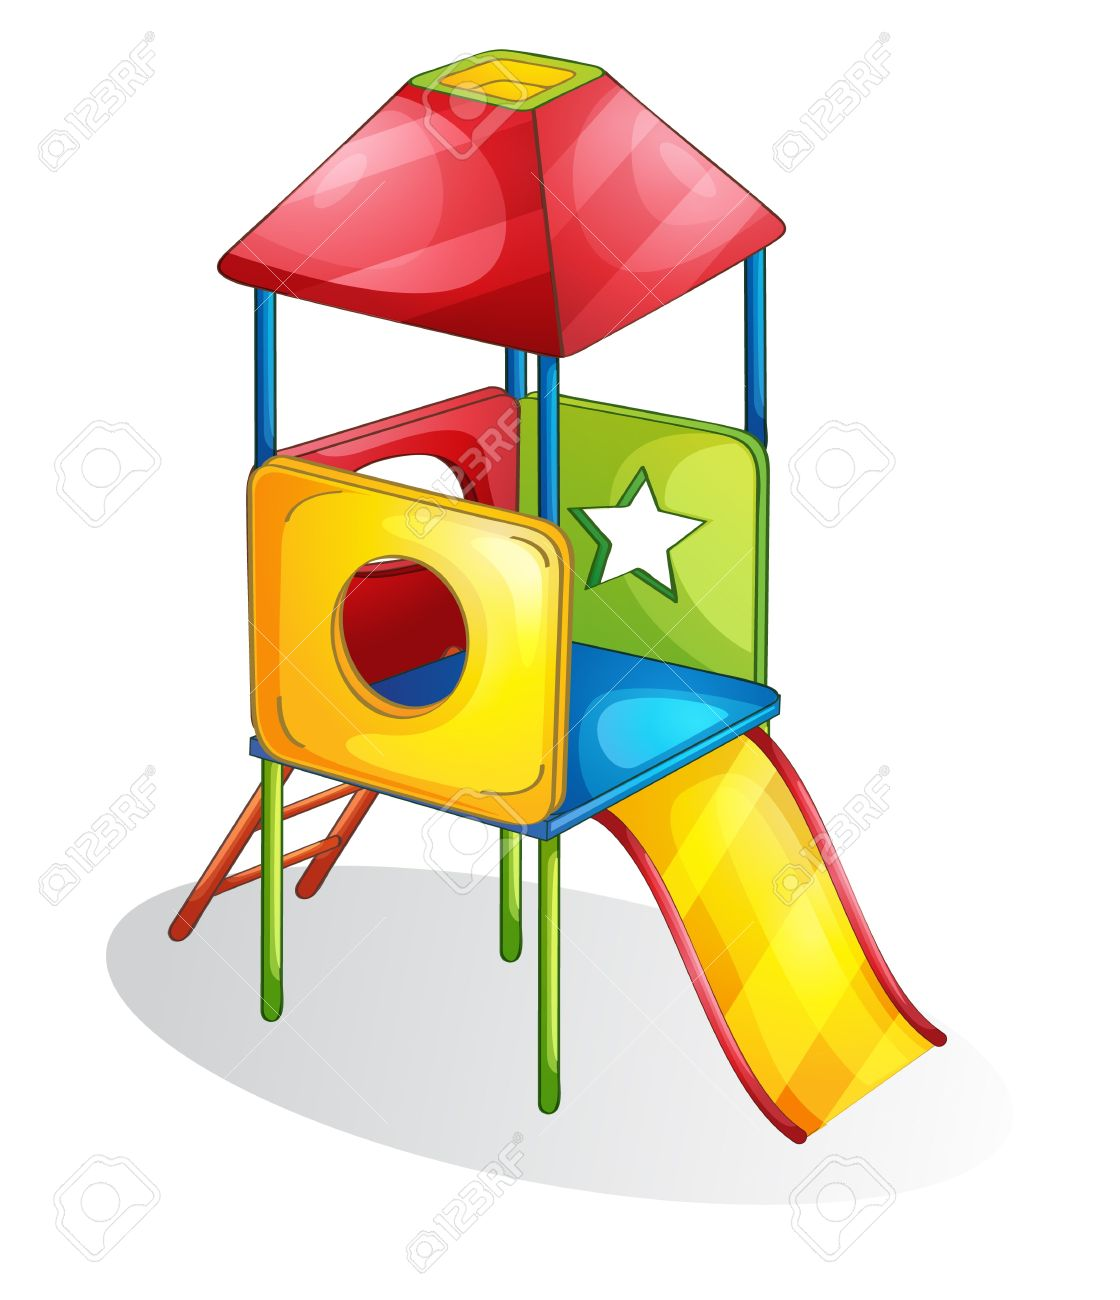 1120x1300 Place Clipart Playground Equipment